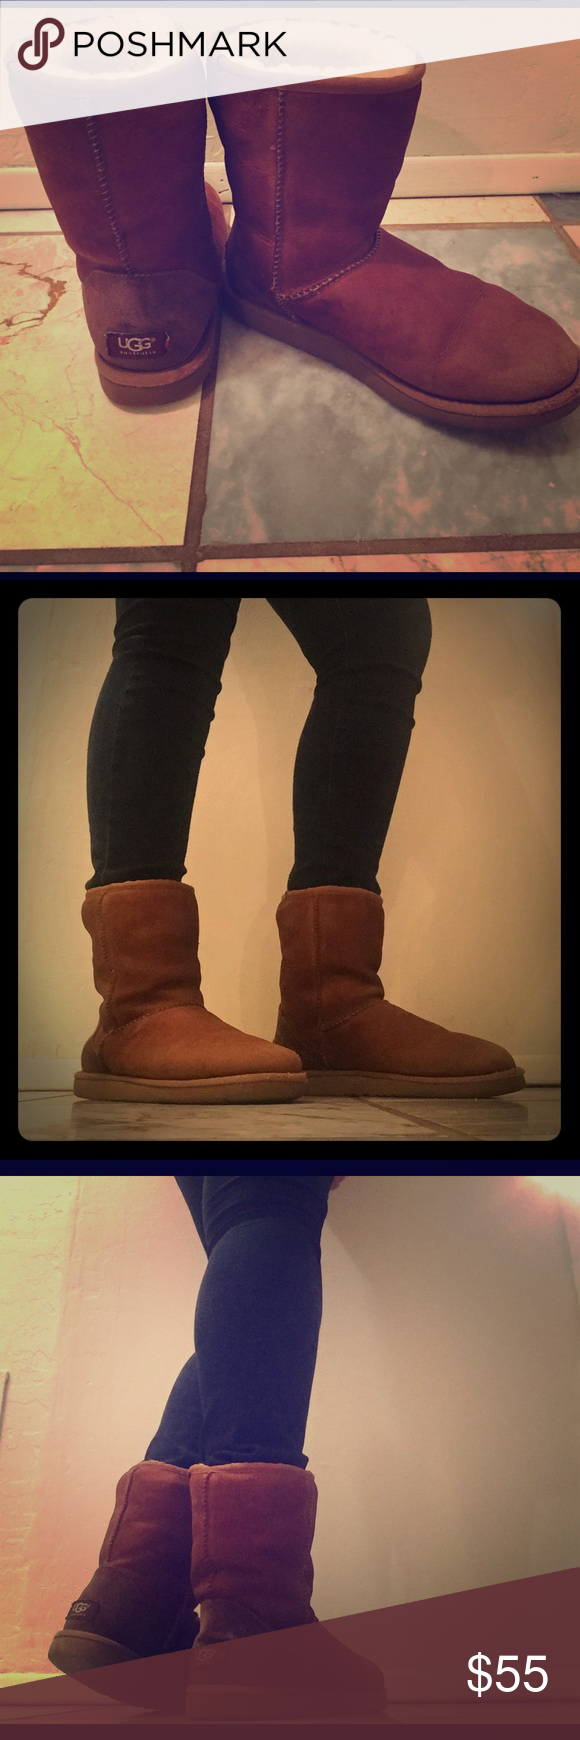 Chestnut brown ugg boots Short chestnut brown ugg boots. They are real uggs. Size 7 but I'm a size 8 and they fit me. In very good condition. No holes, smells, no crazy stains. Deff worn but still has a lot of life in them. Also so warm and comfortable! UGG Shoes Winter & Rain Boots